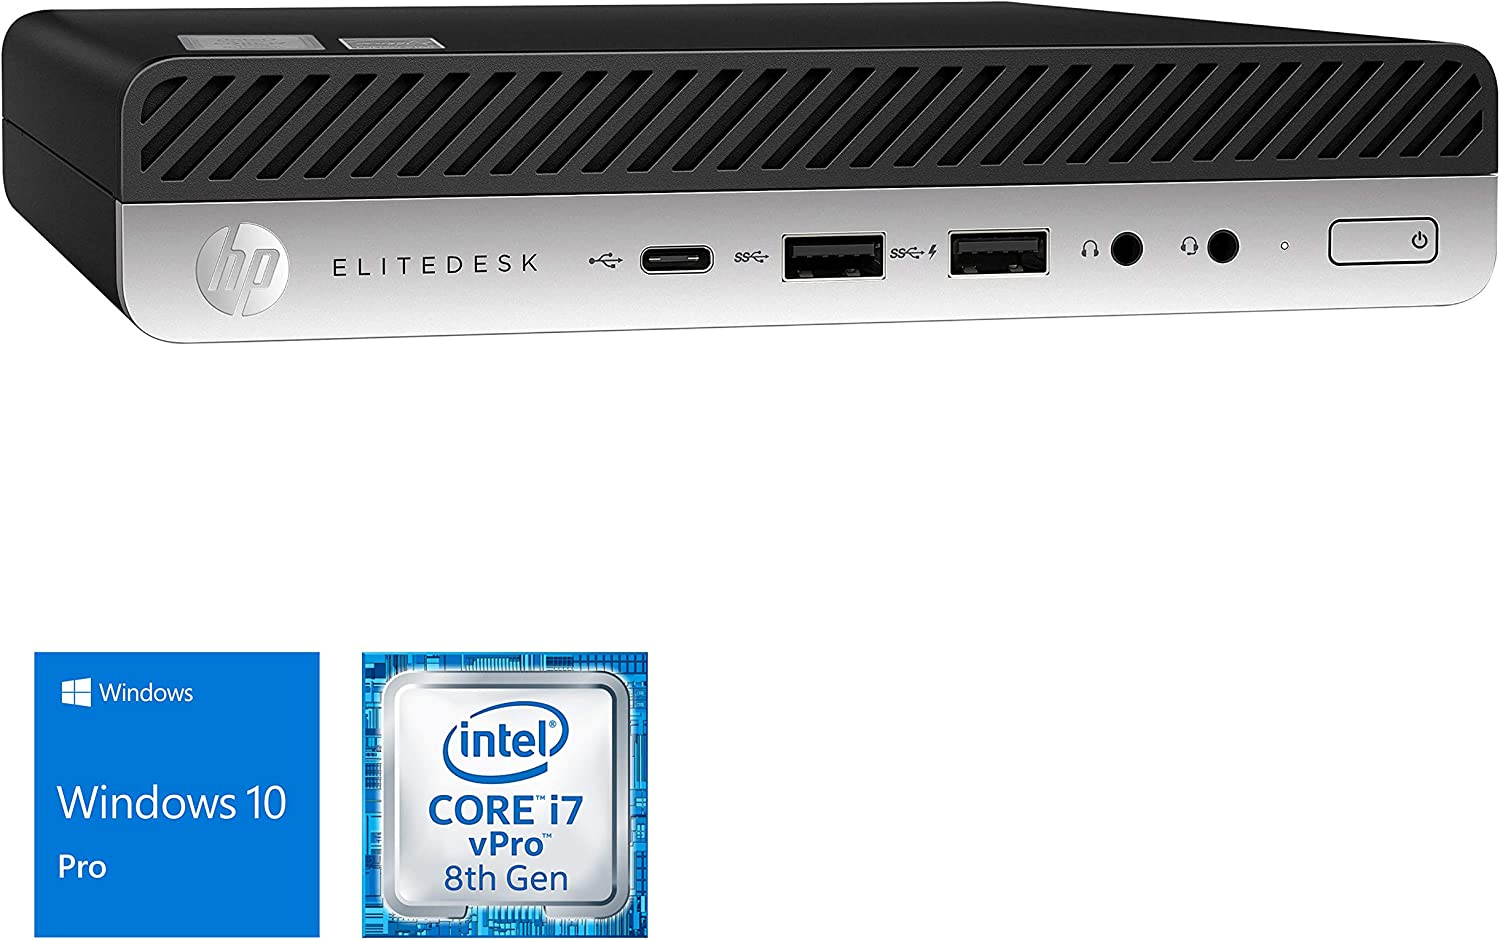 HP EliteDesk 800 G4 Mini PC, Intel Core i7-8700T Upto 4.0GHz, 32GB RAM, 1TB NVMe SSD, DisplayPort, VGA, Wi-Fi, Bluetooth, Windows 10 Pro